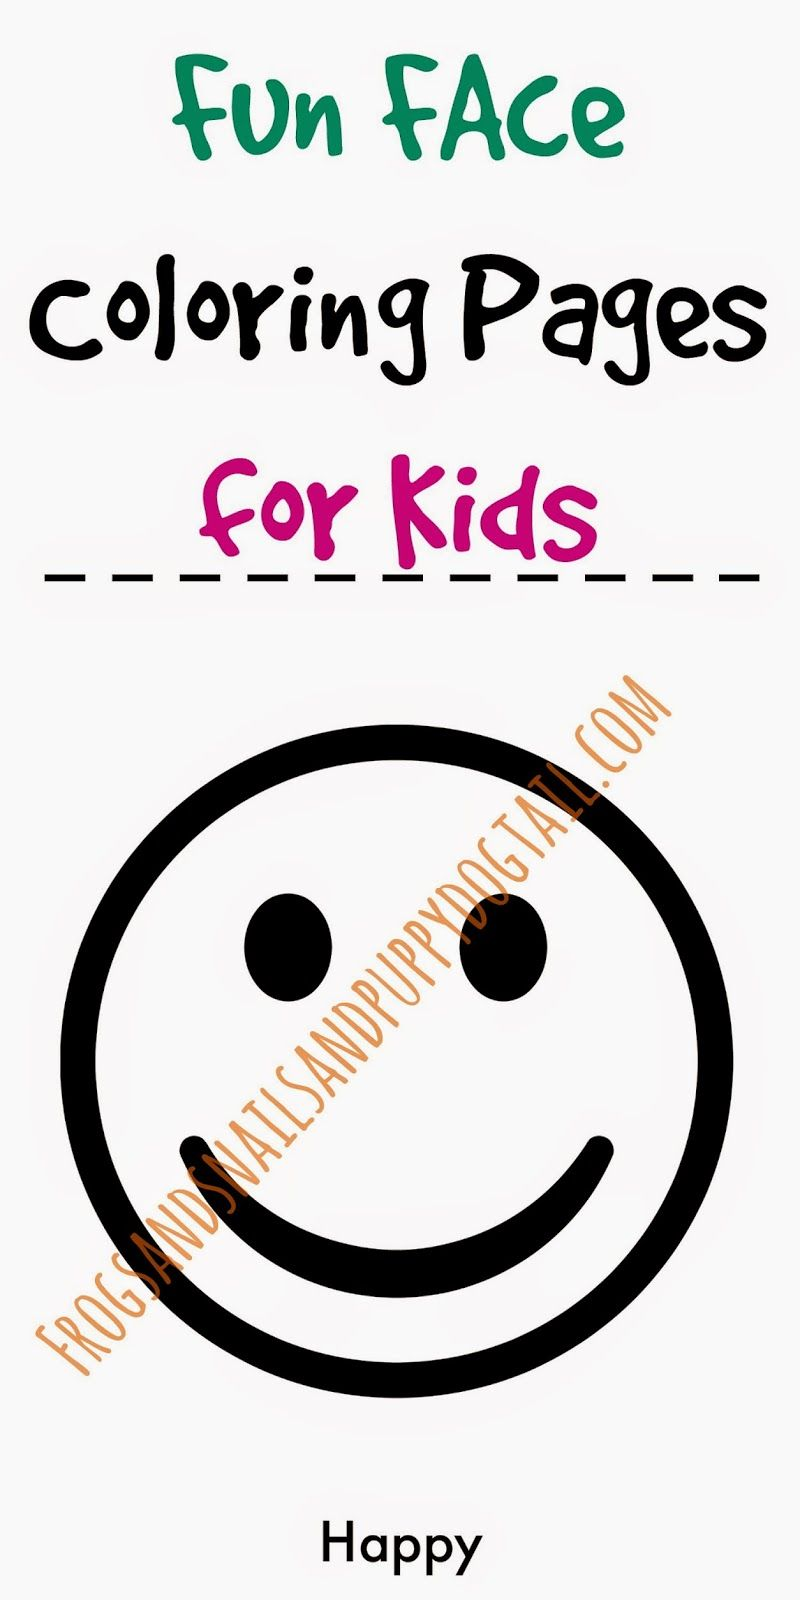 Fun Face Coloring Pages for Kids | Teaching emotions ...